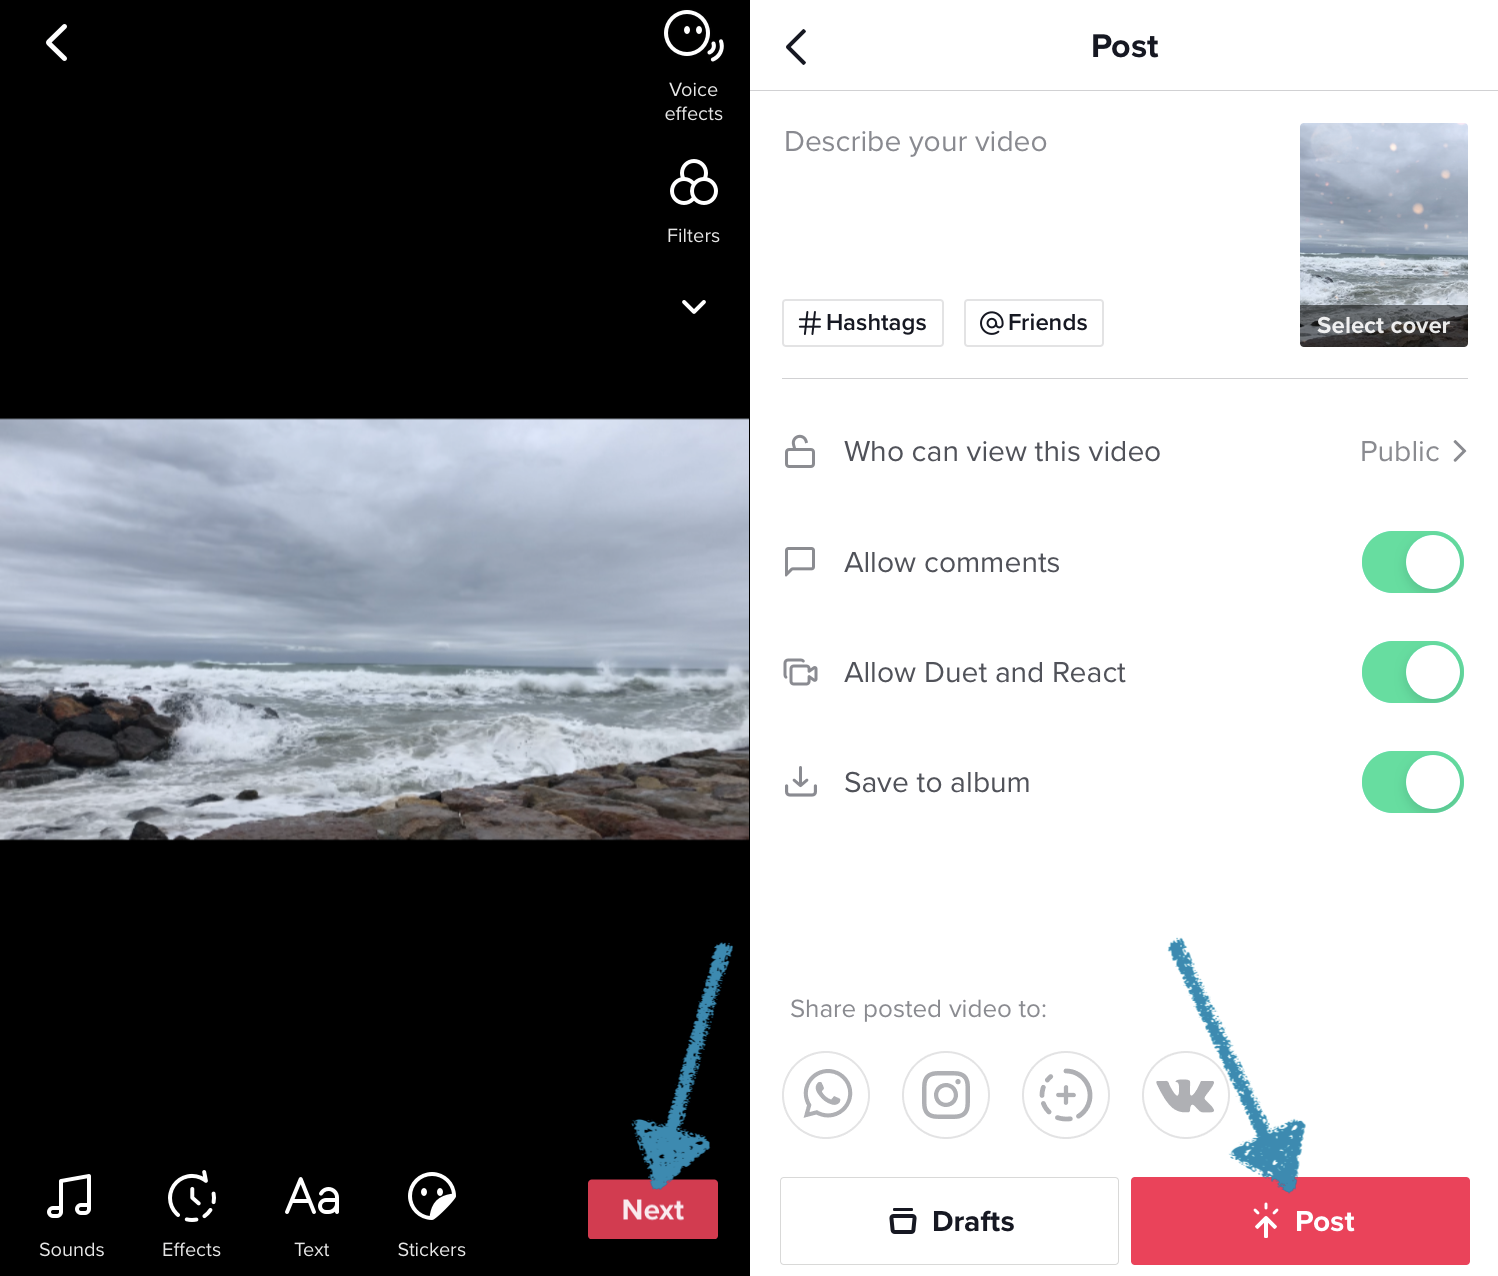 Post the recorded and edited video on TikTok